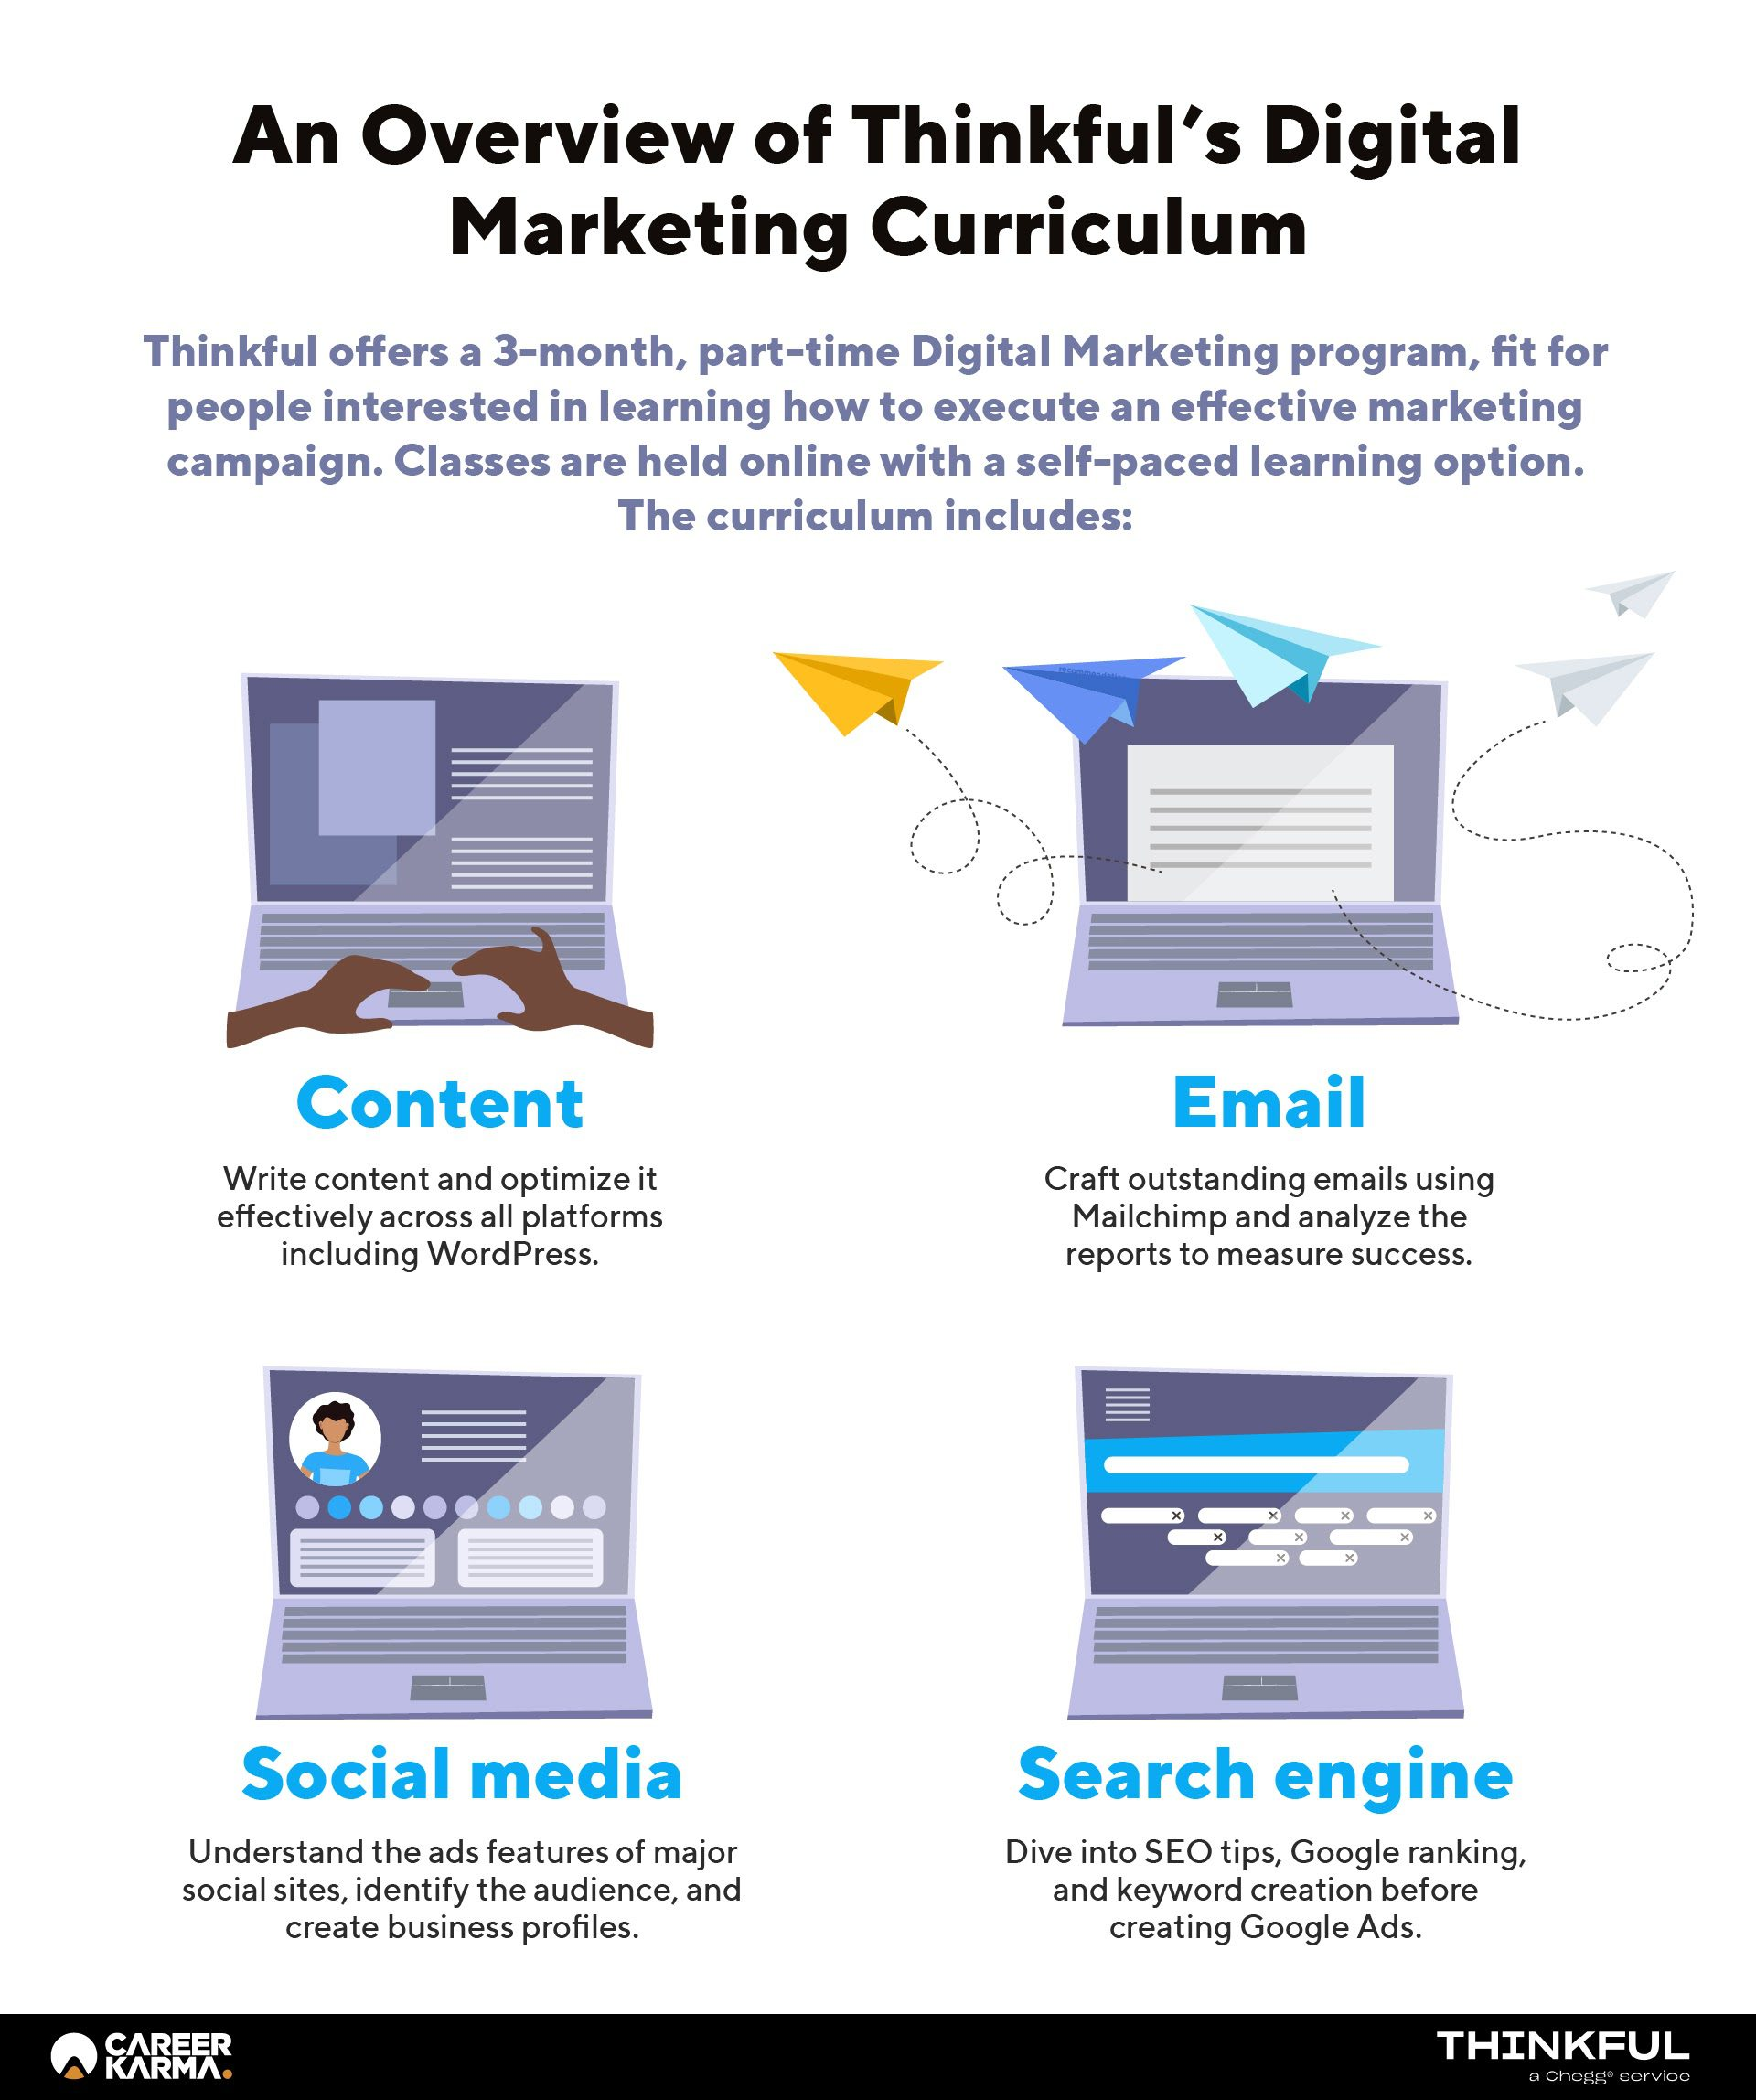 An infographic covering the primary topics discussed in Thinkful's Digital Marketing curriculum